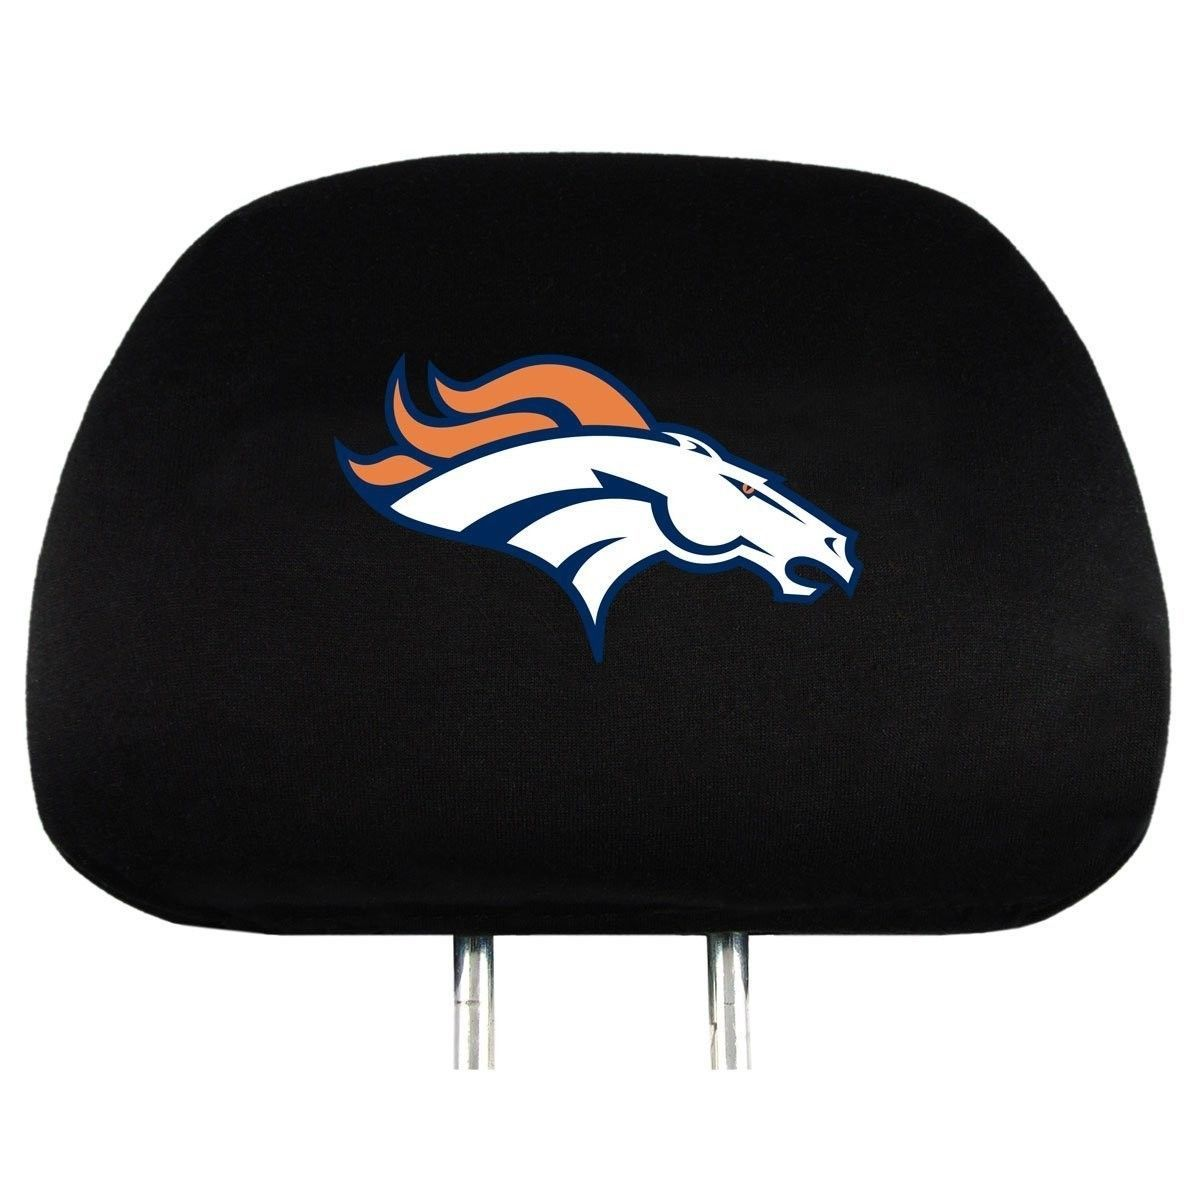 DENVER BRONCOS CAR AUTO 2 TEAM HEAD REST COVERS NFL FOOTBALL